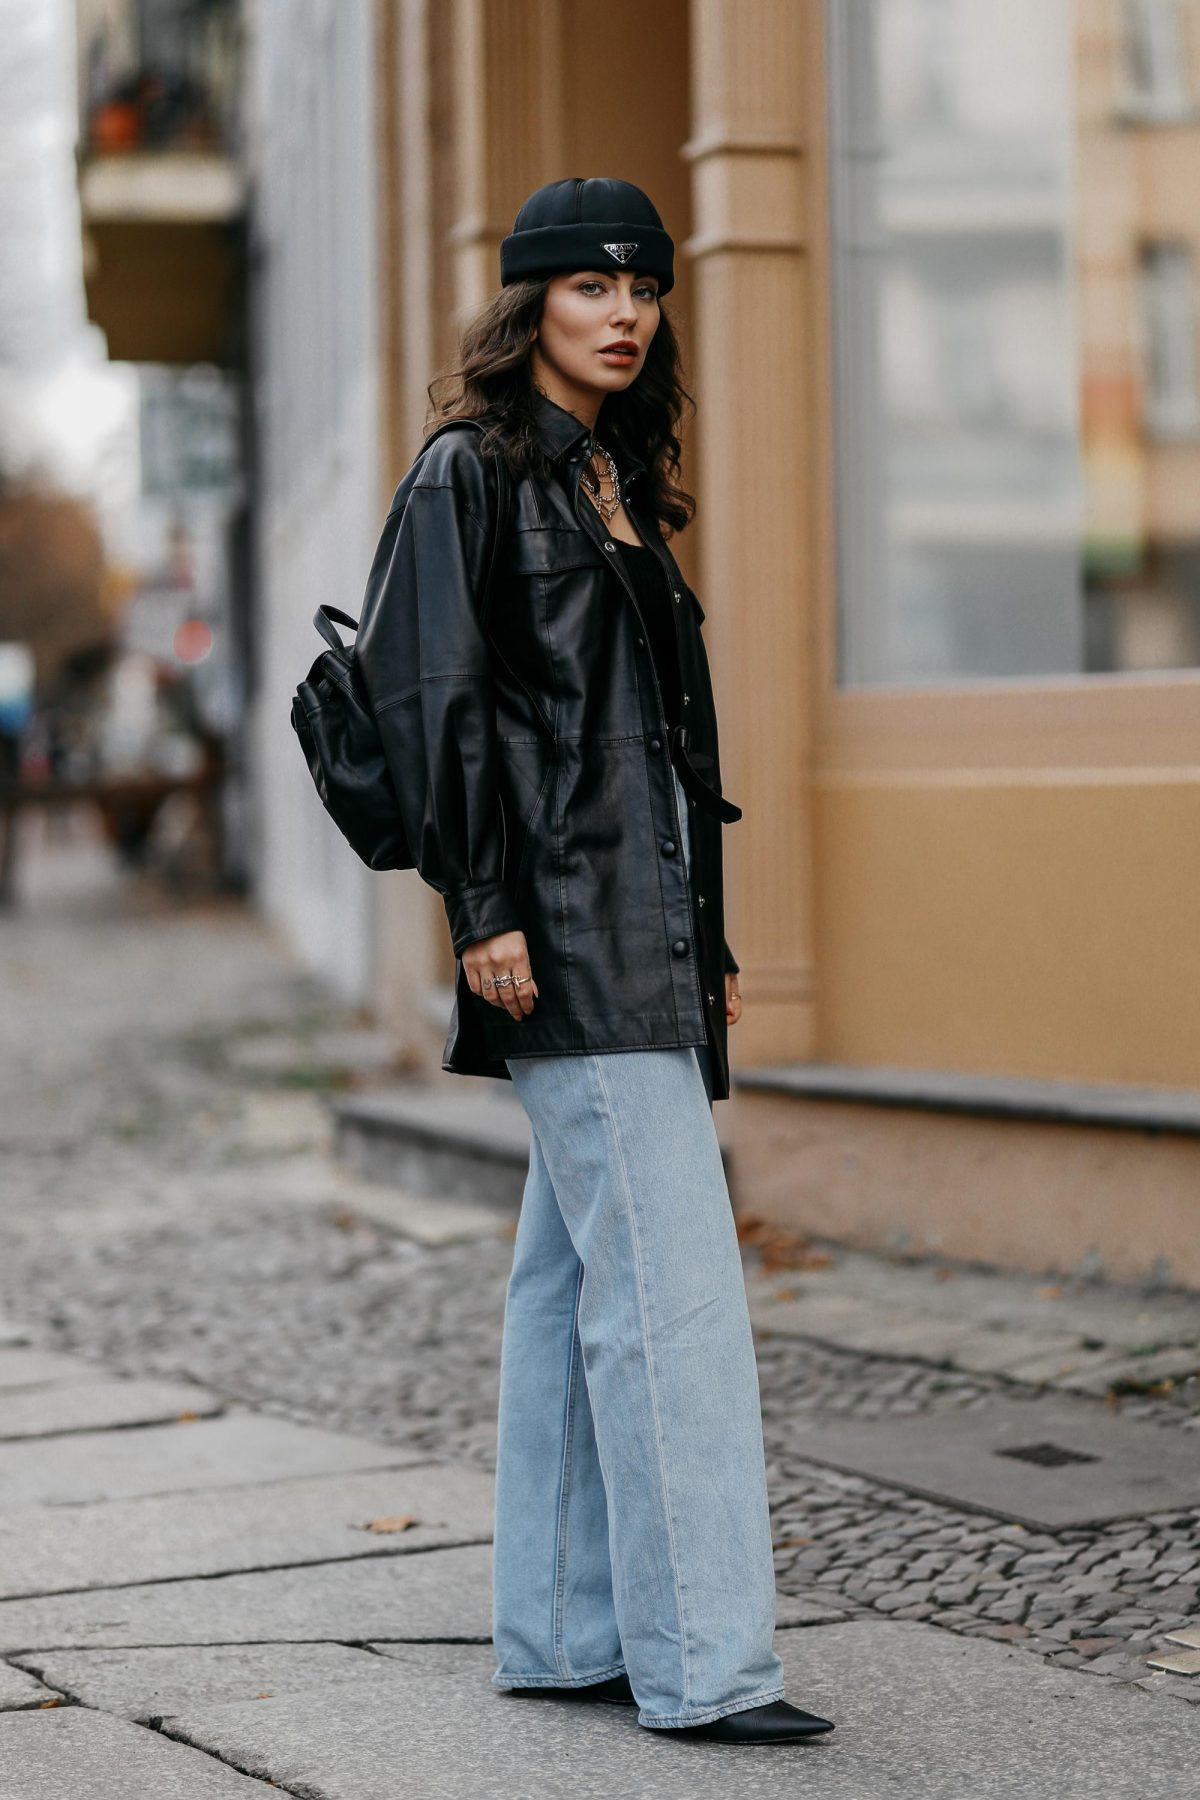 The Tomboy Chic